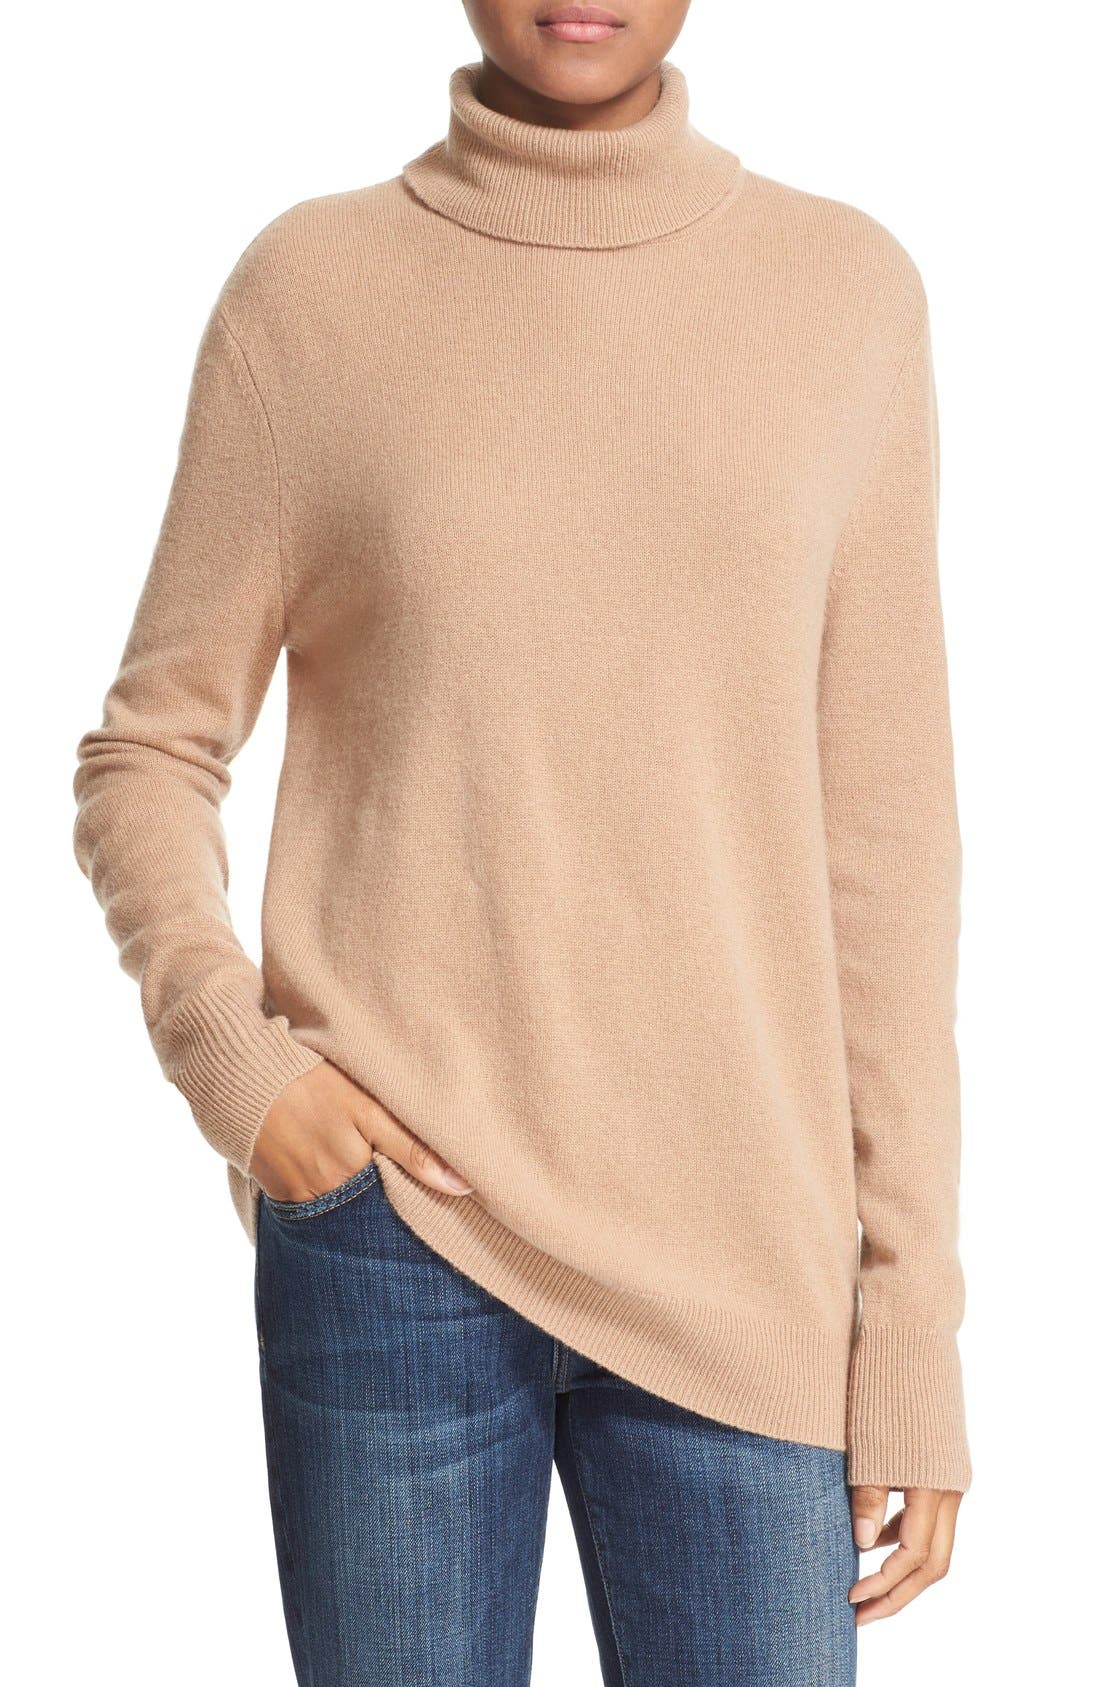 Main Image - Equipment 'Oscar' Cashmere Turtleneck